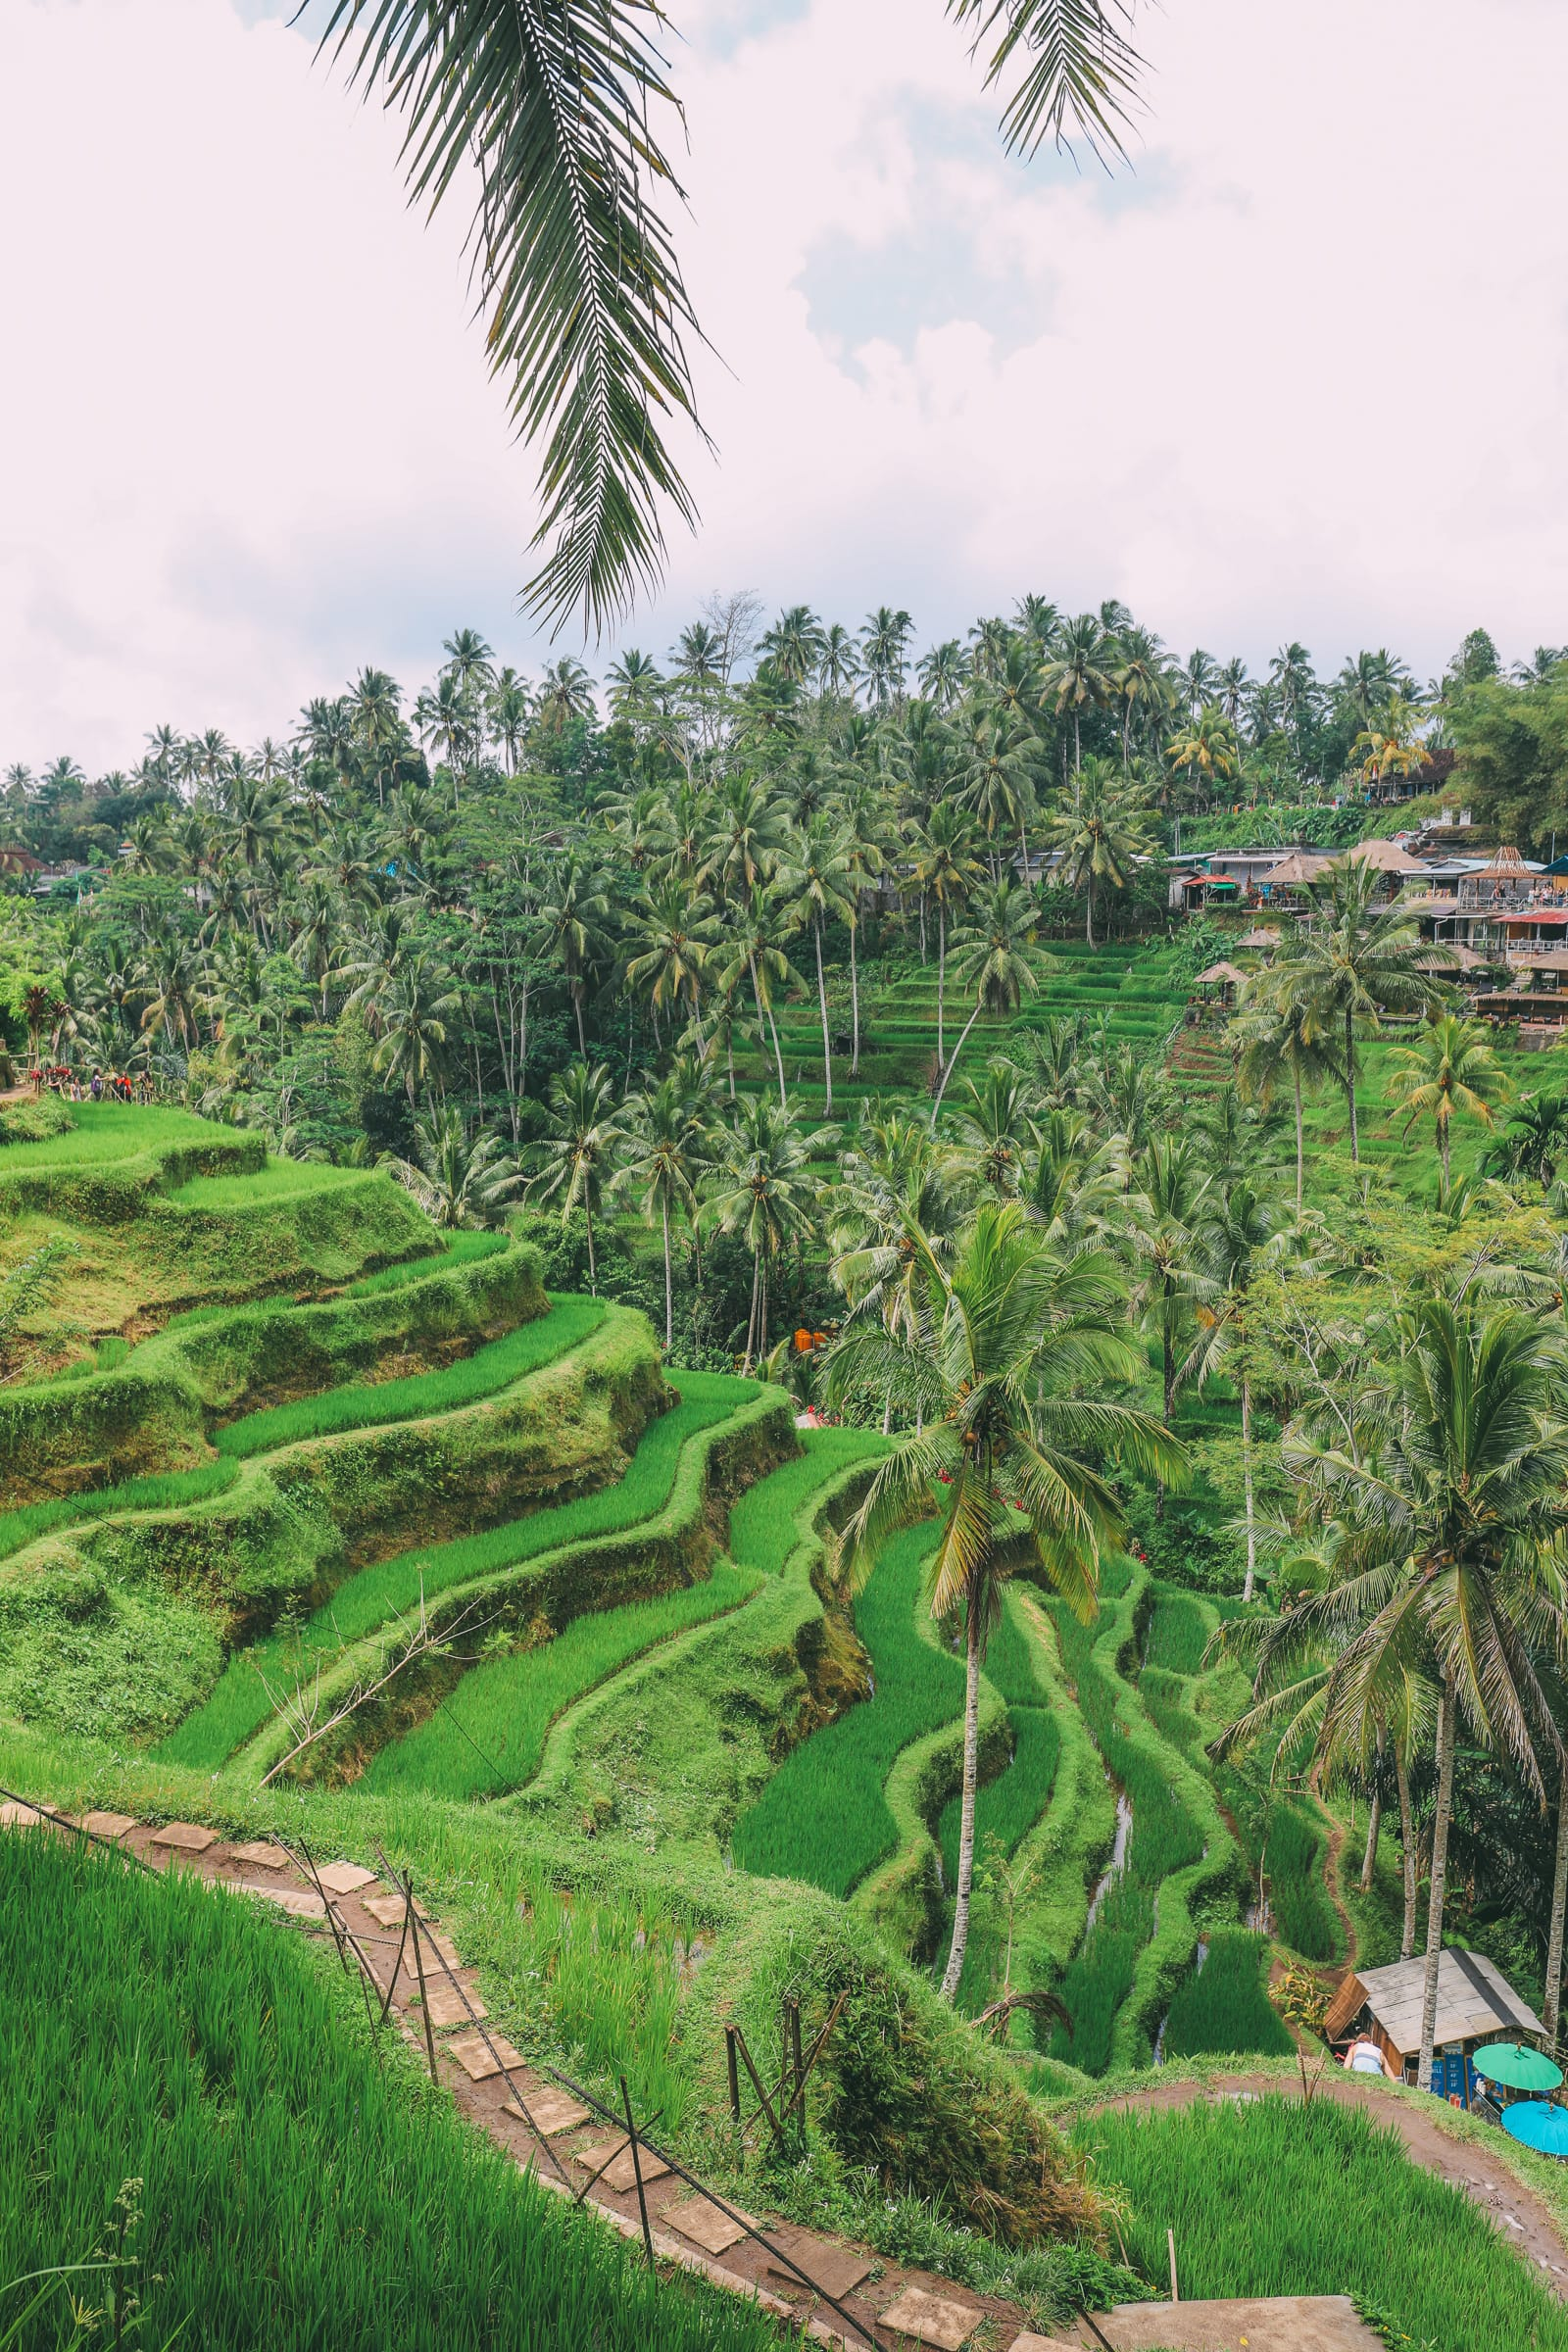 Bali Travel - Tegalalang Rice Terrace In Ubud And Gunung Kawi Temple (16)